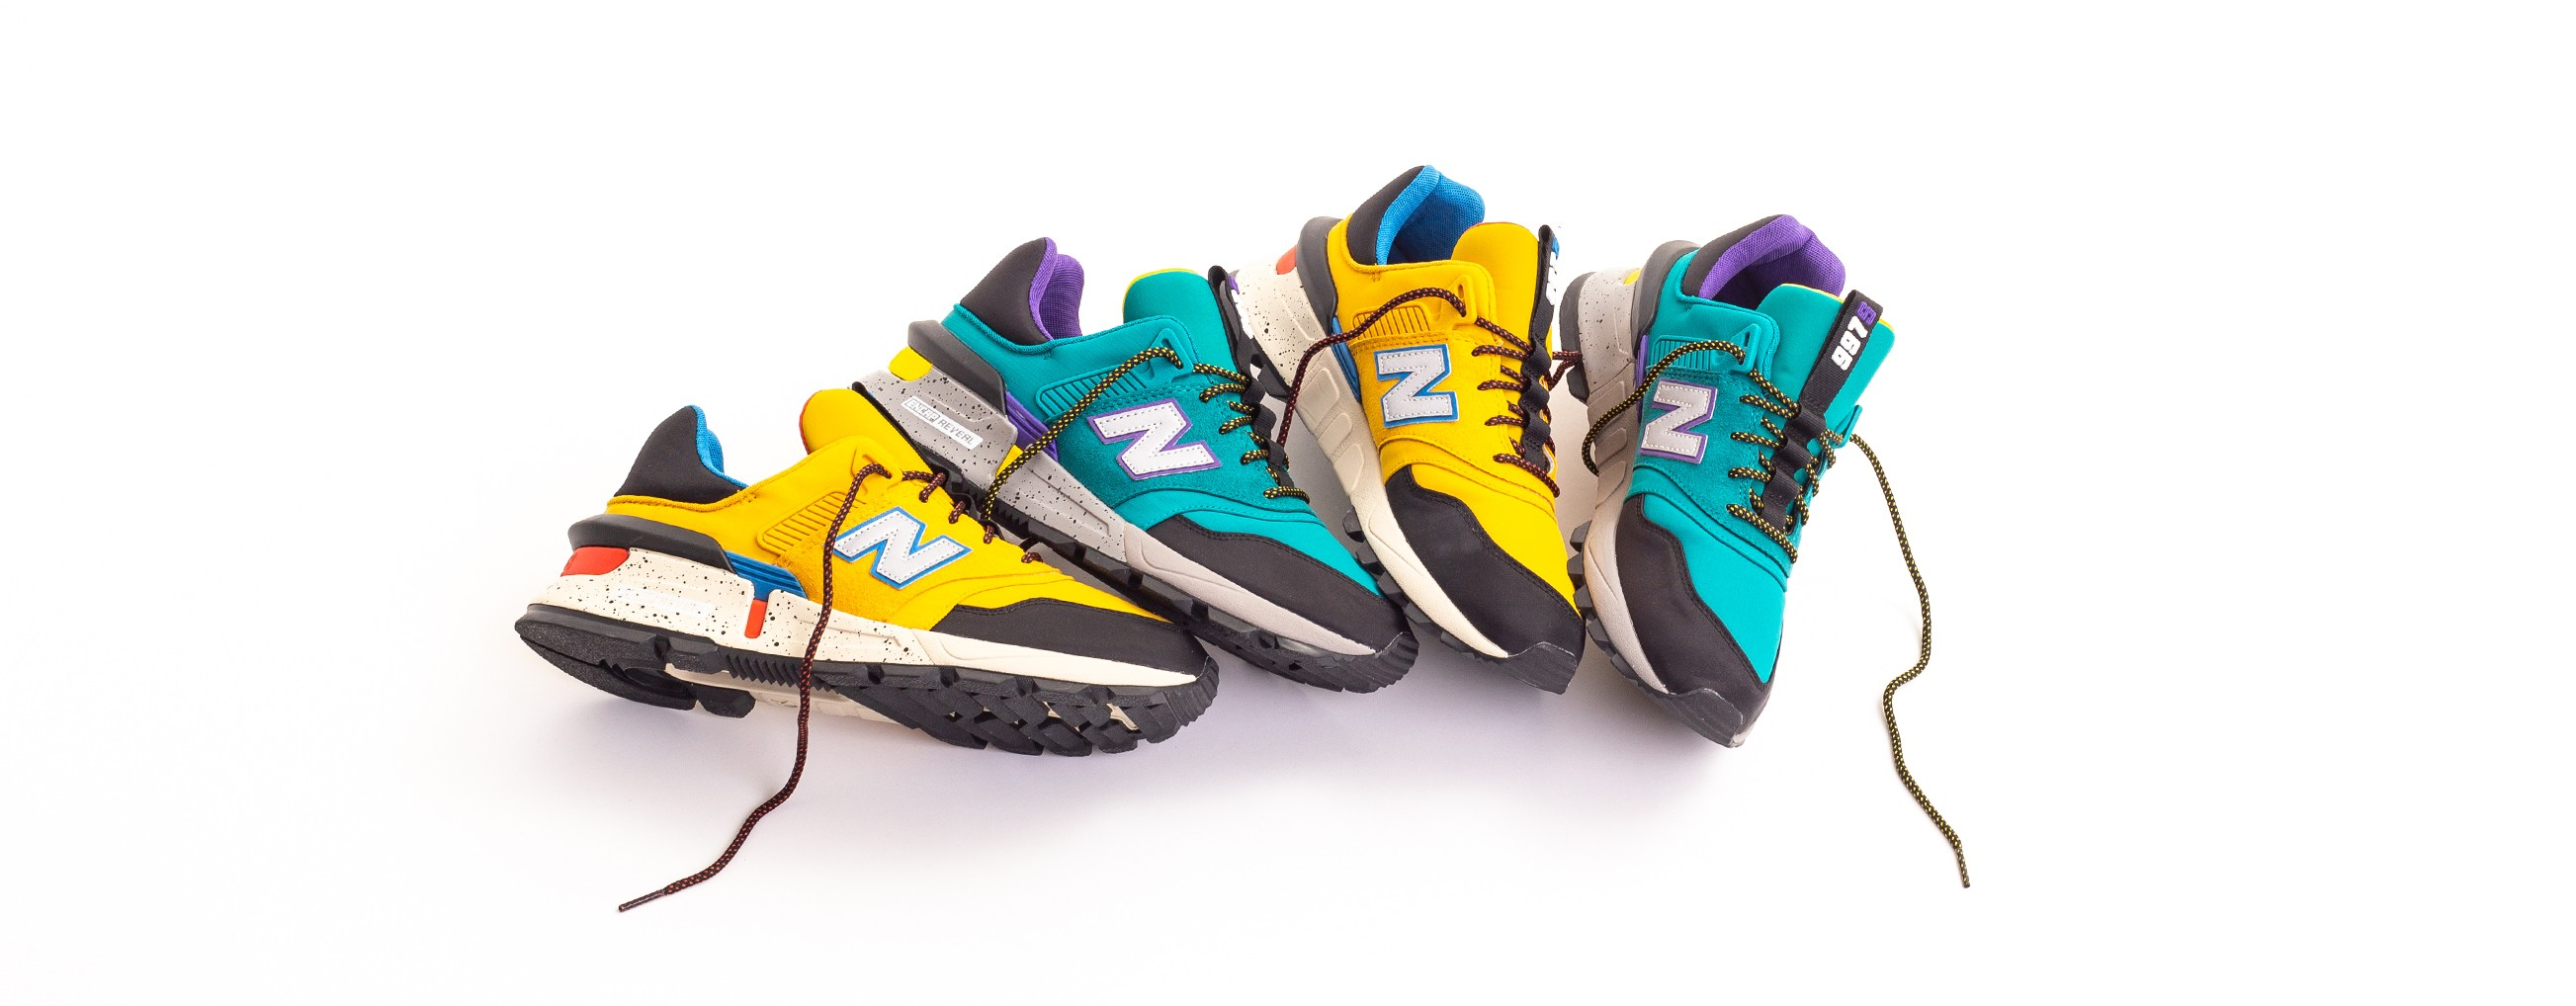 New Balance Sneaker Collection